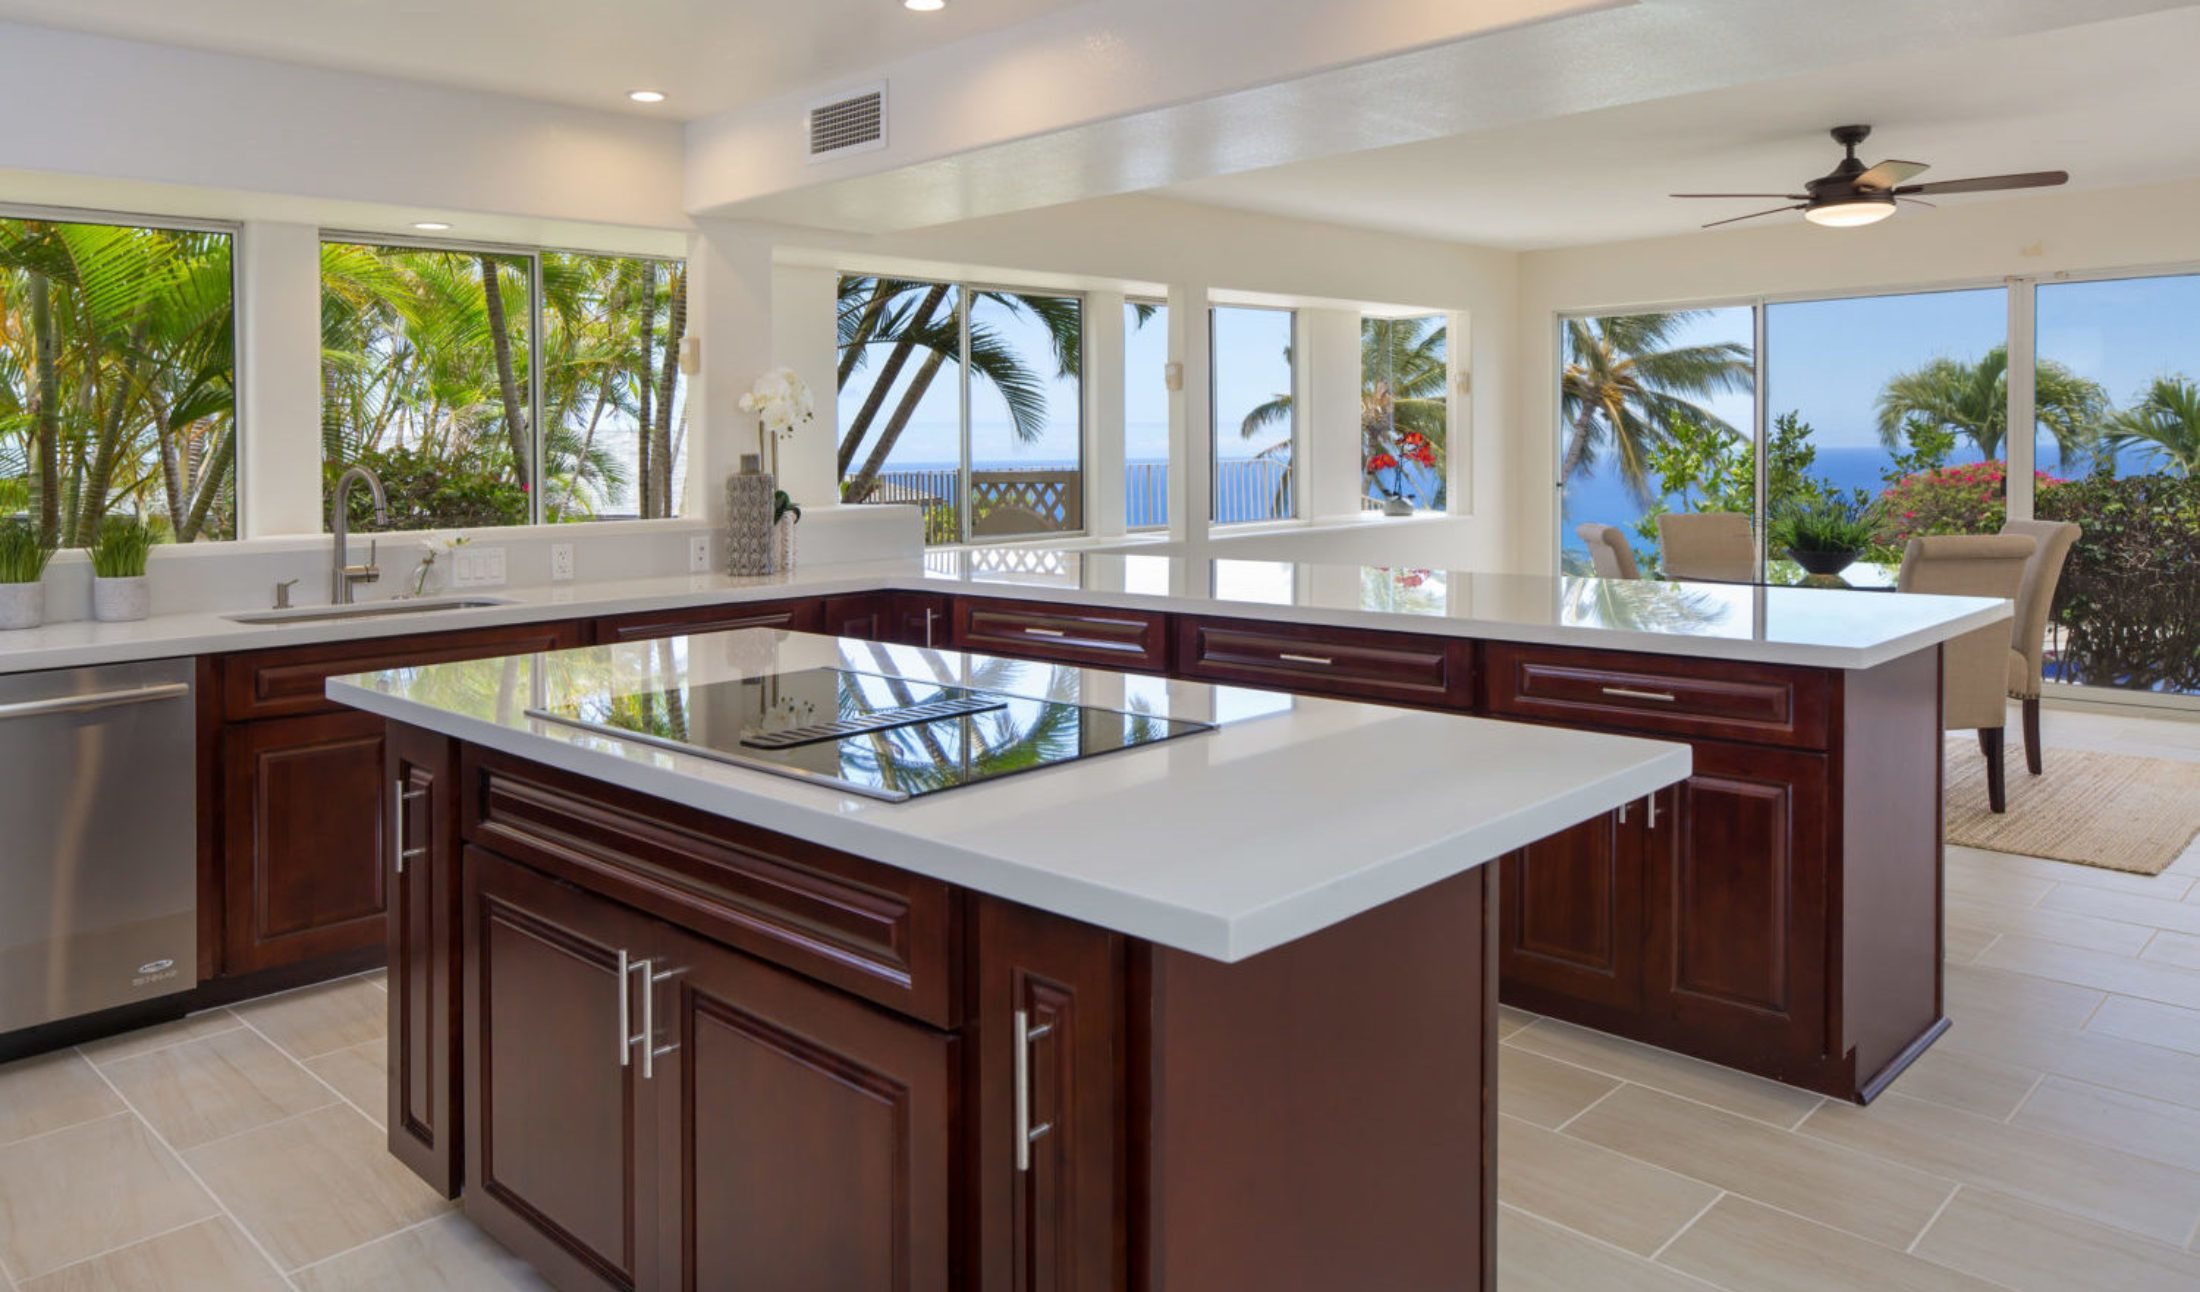 Kitchen Envy Where To Cook Up Your Thanksgiving Feast Hawaii Homes Kitchen Home